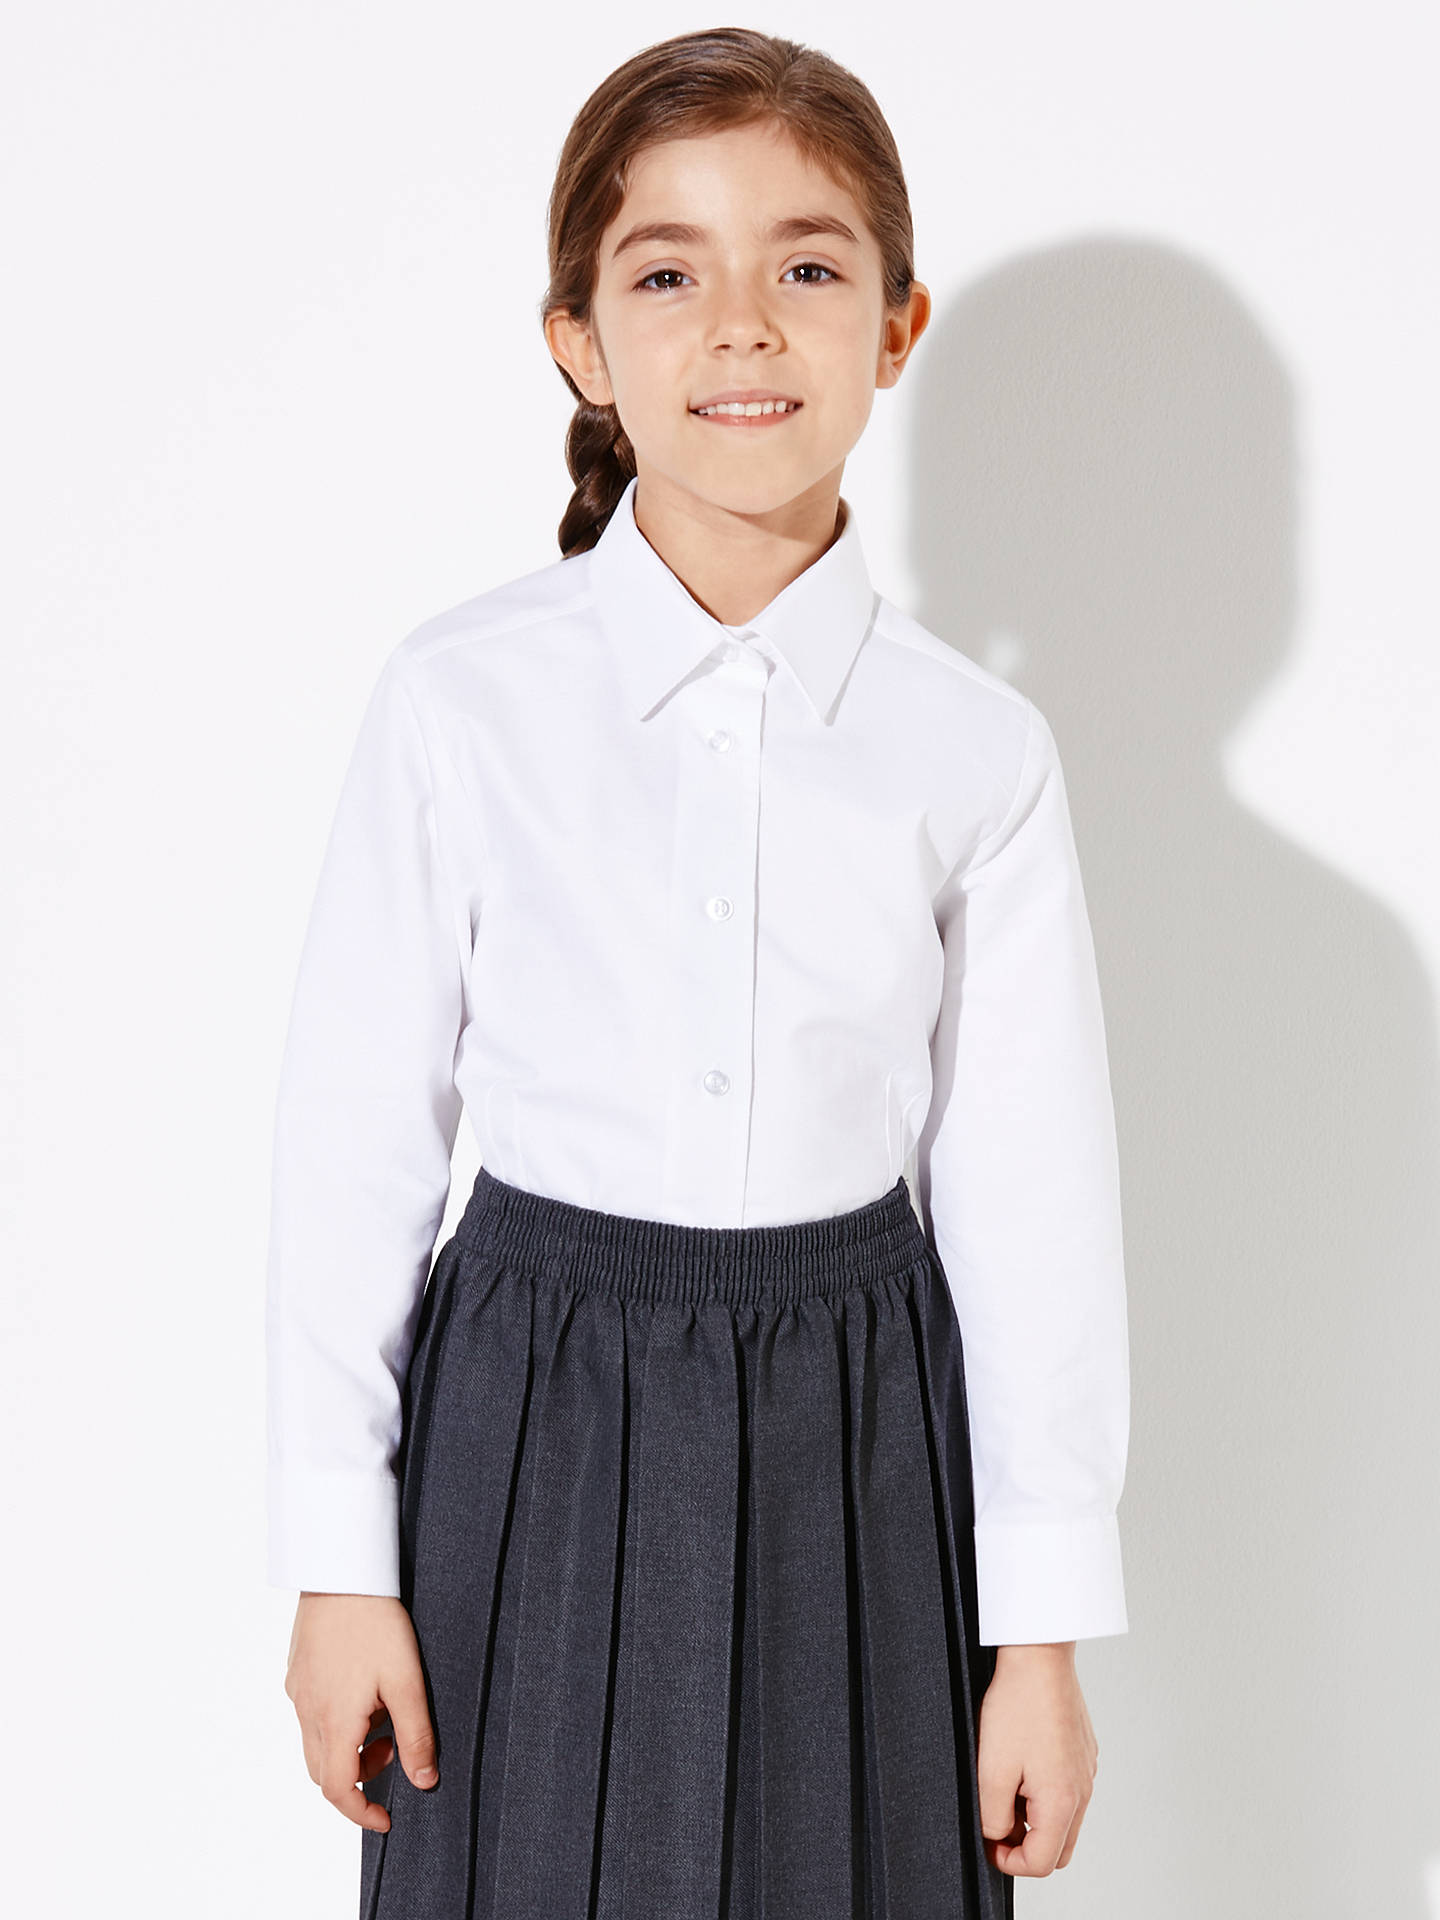 d3d5ea517 Buy John Lewis & Partners Girls' Long Sleeve Fitted Pure Cotton School  Blouse, White ...